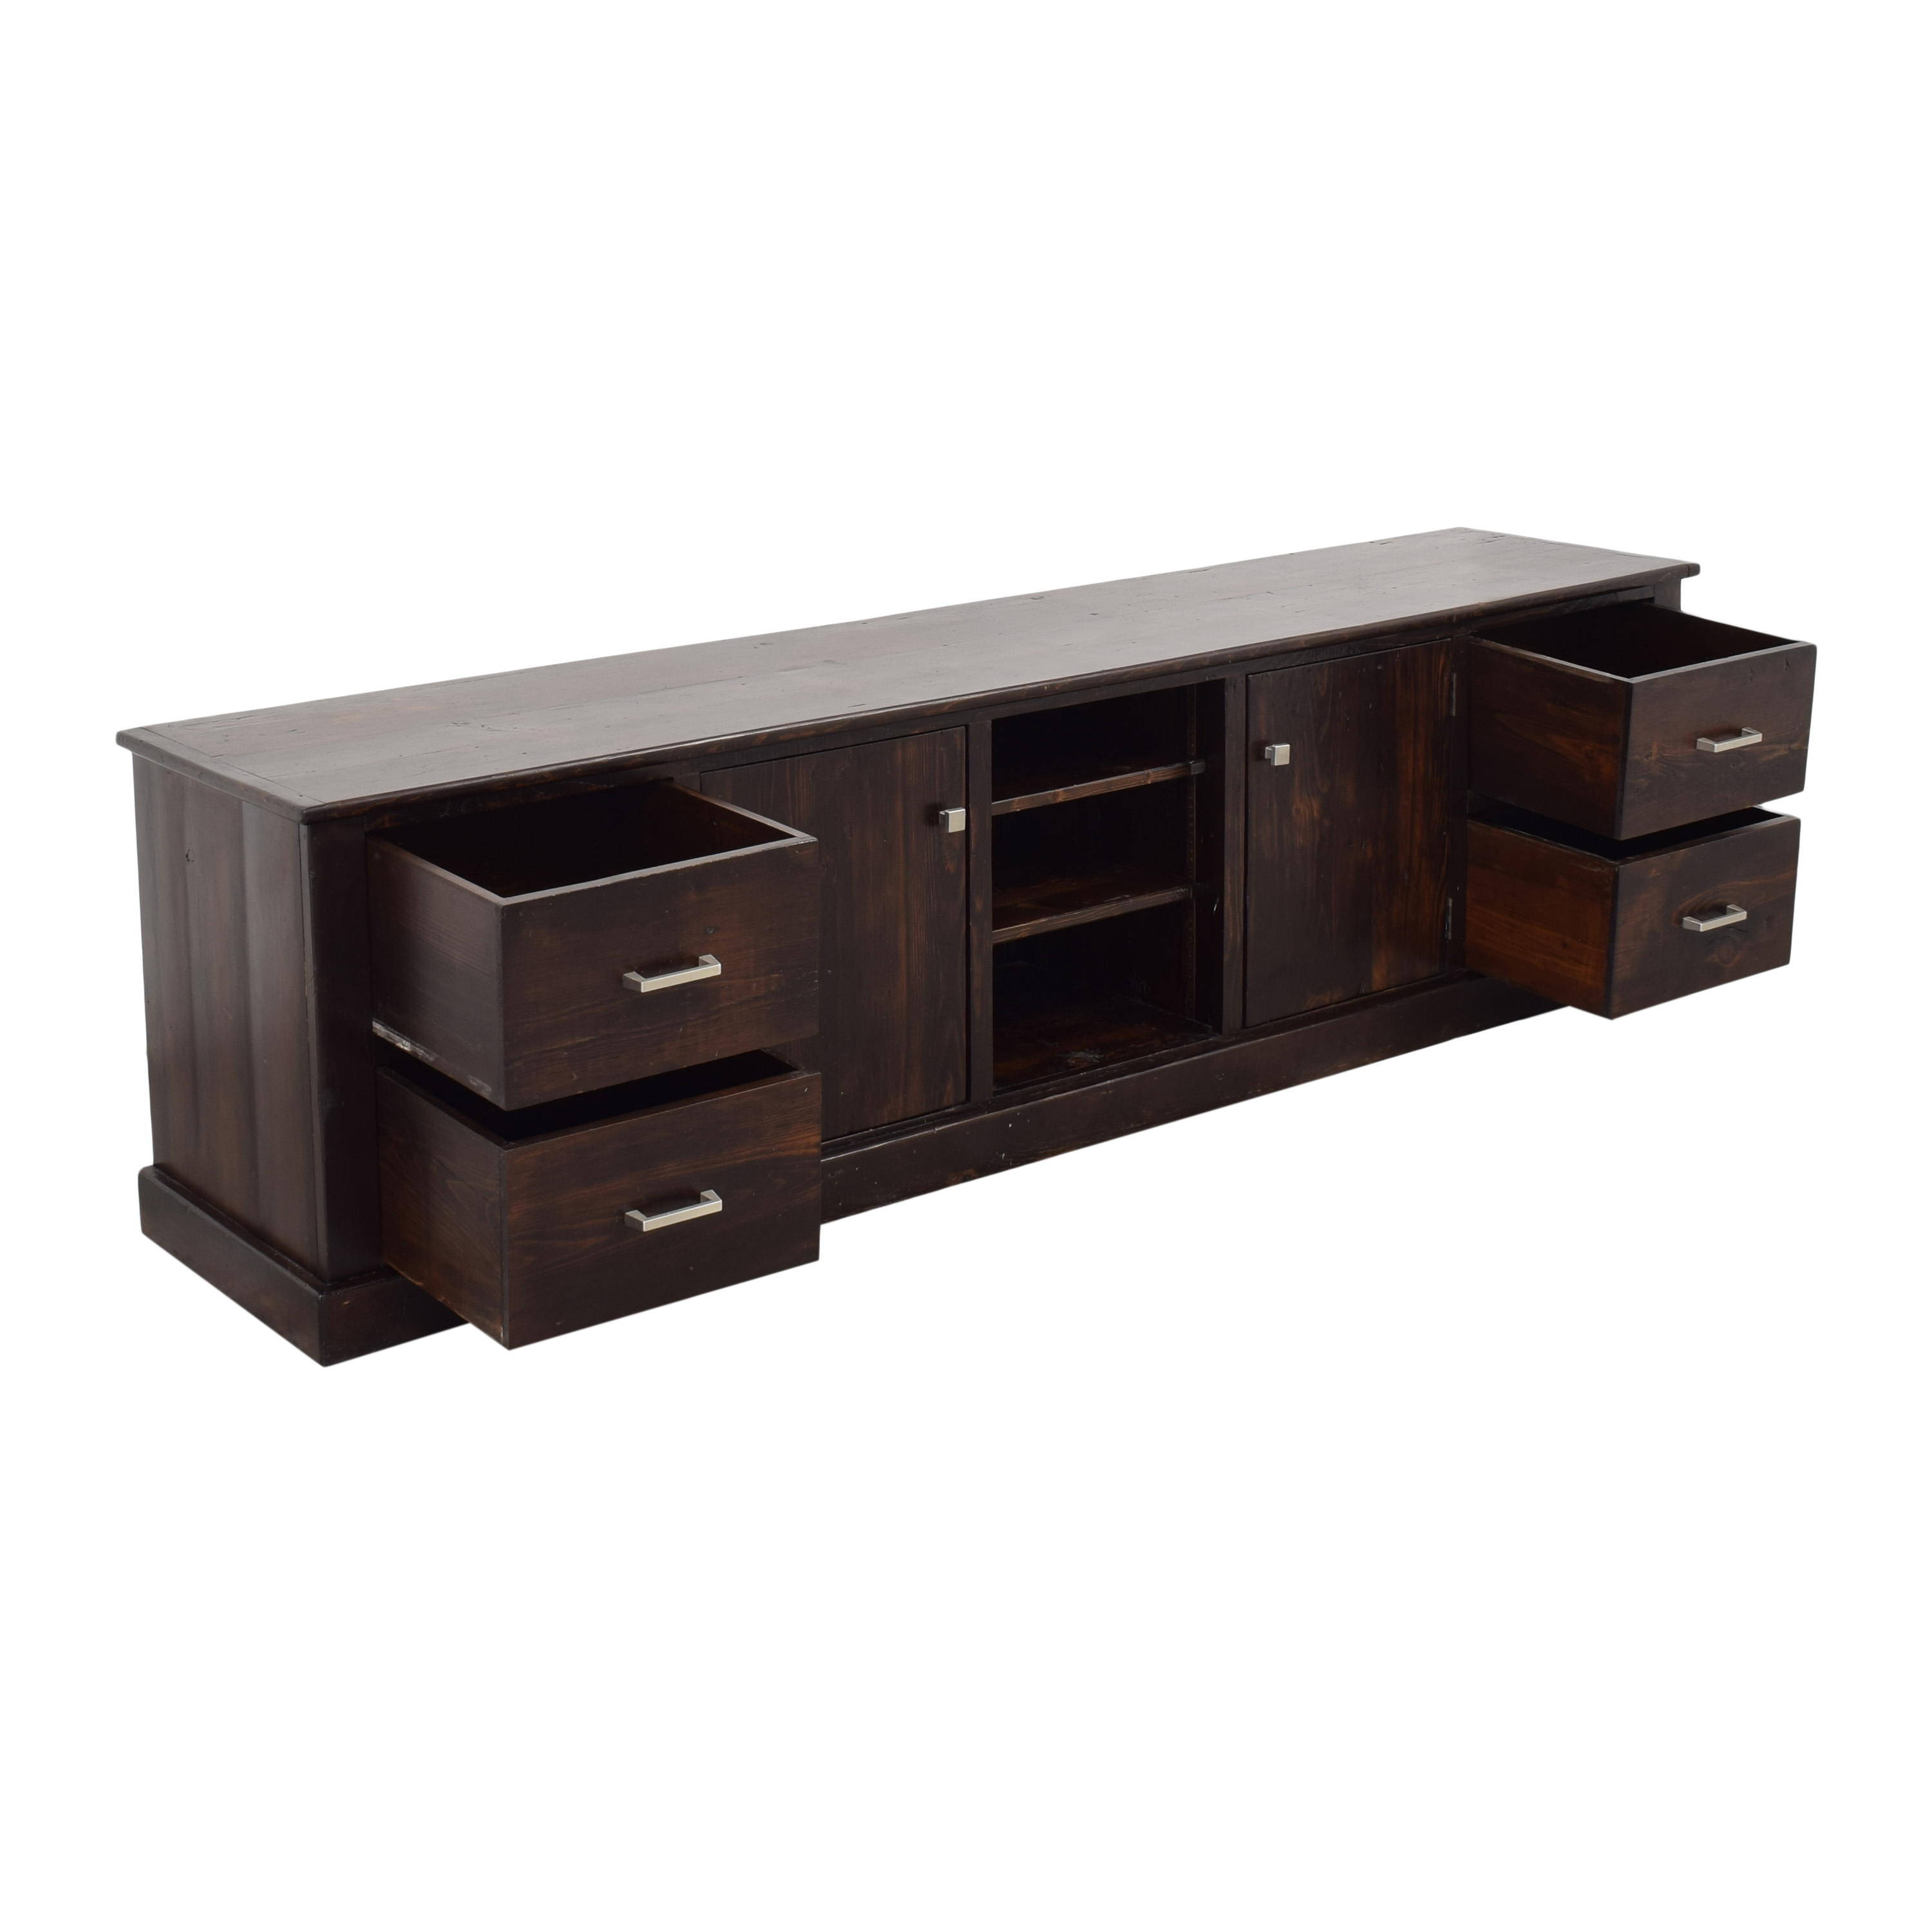 Furniture From The Barn Furniture From the Barn Media Console coupon